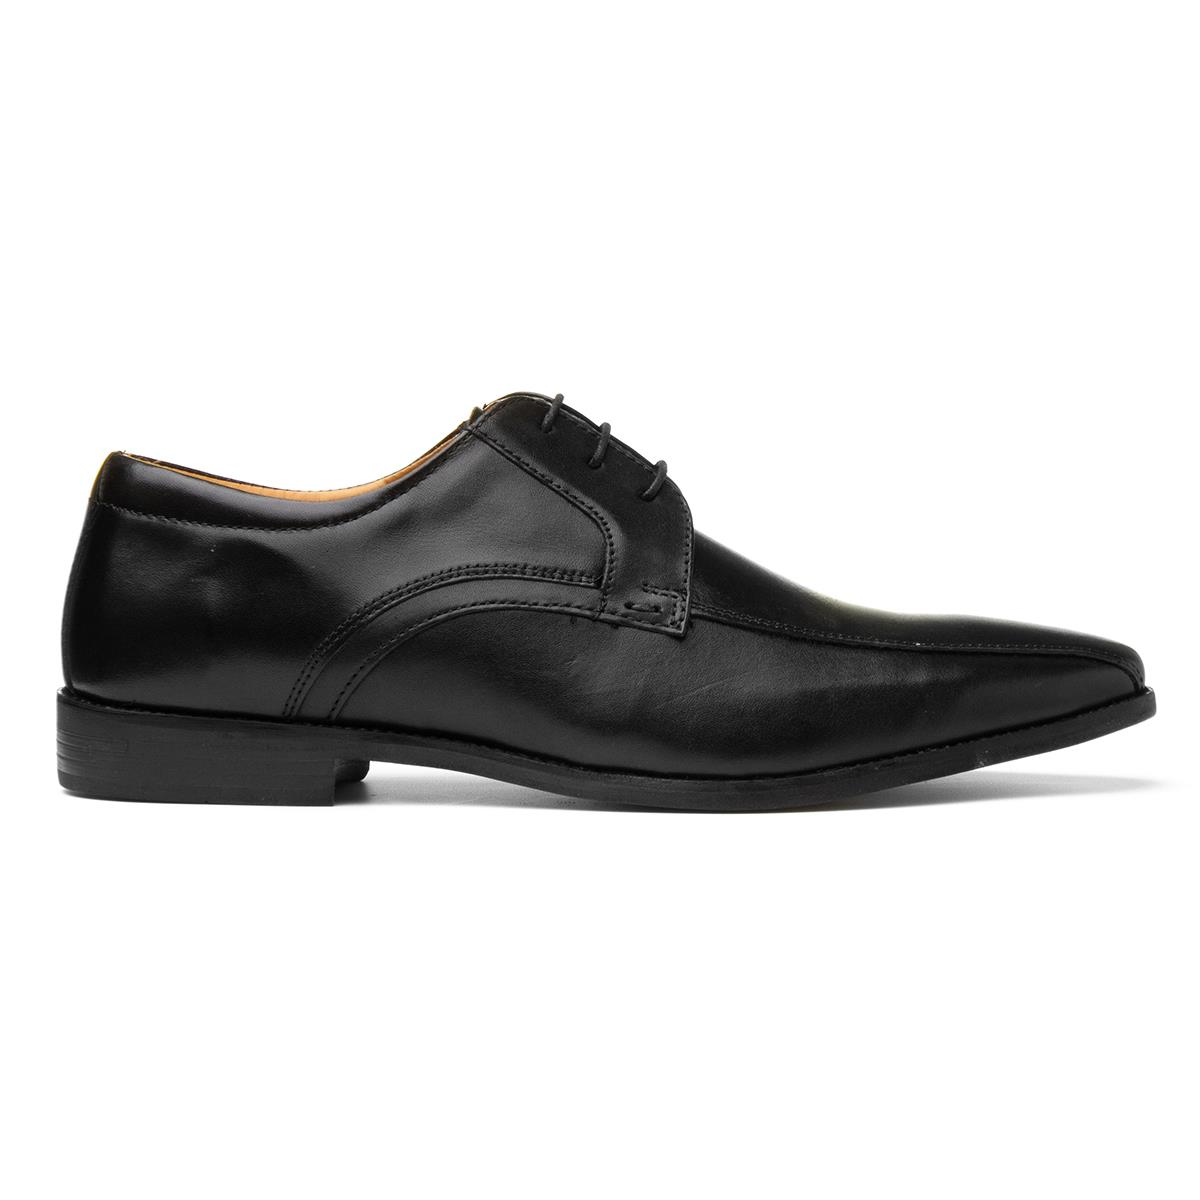 202e9614e521 Red Tape Mens Lace Up Formal Shoe in Black-53131 | Shoe Zone